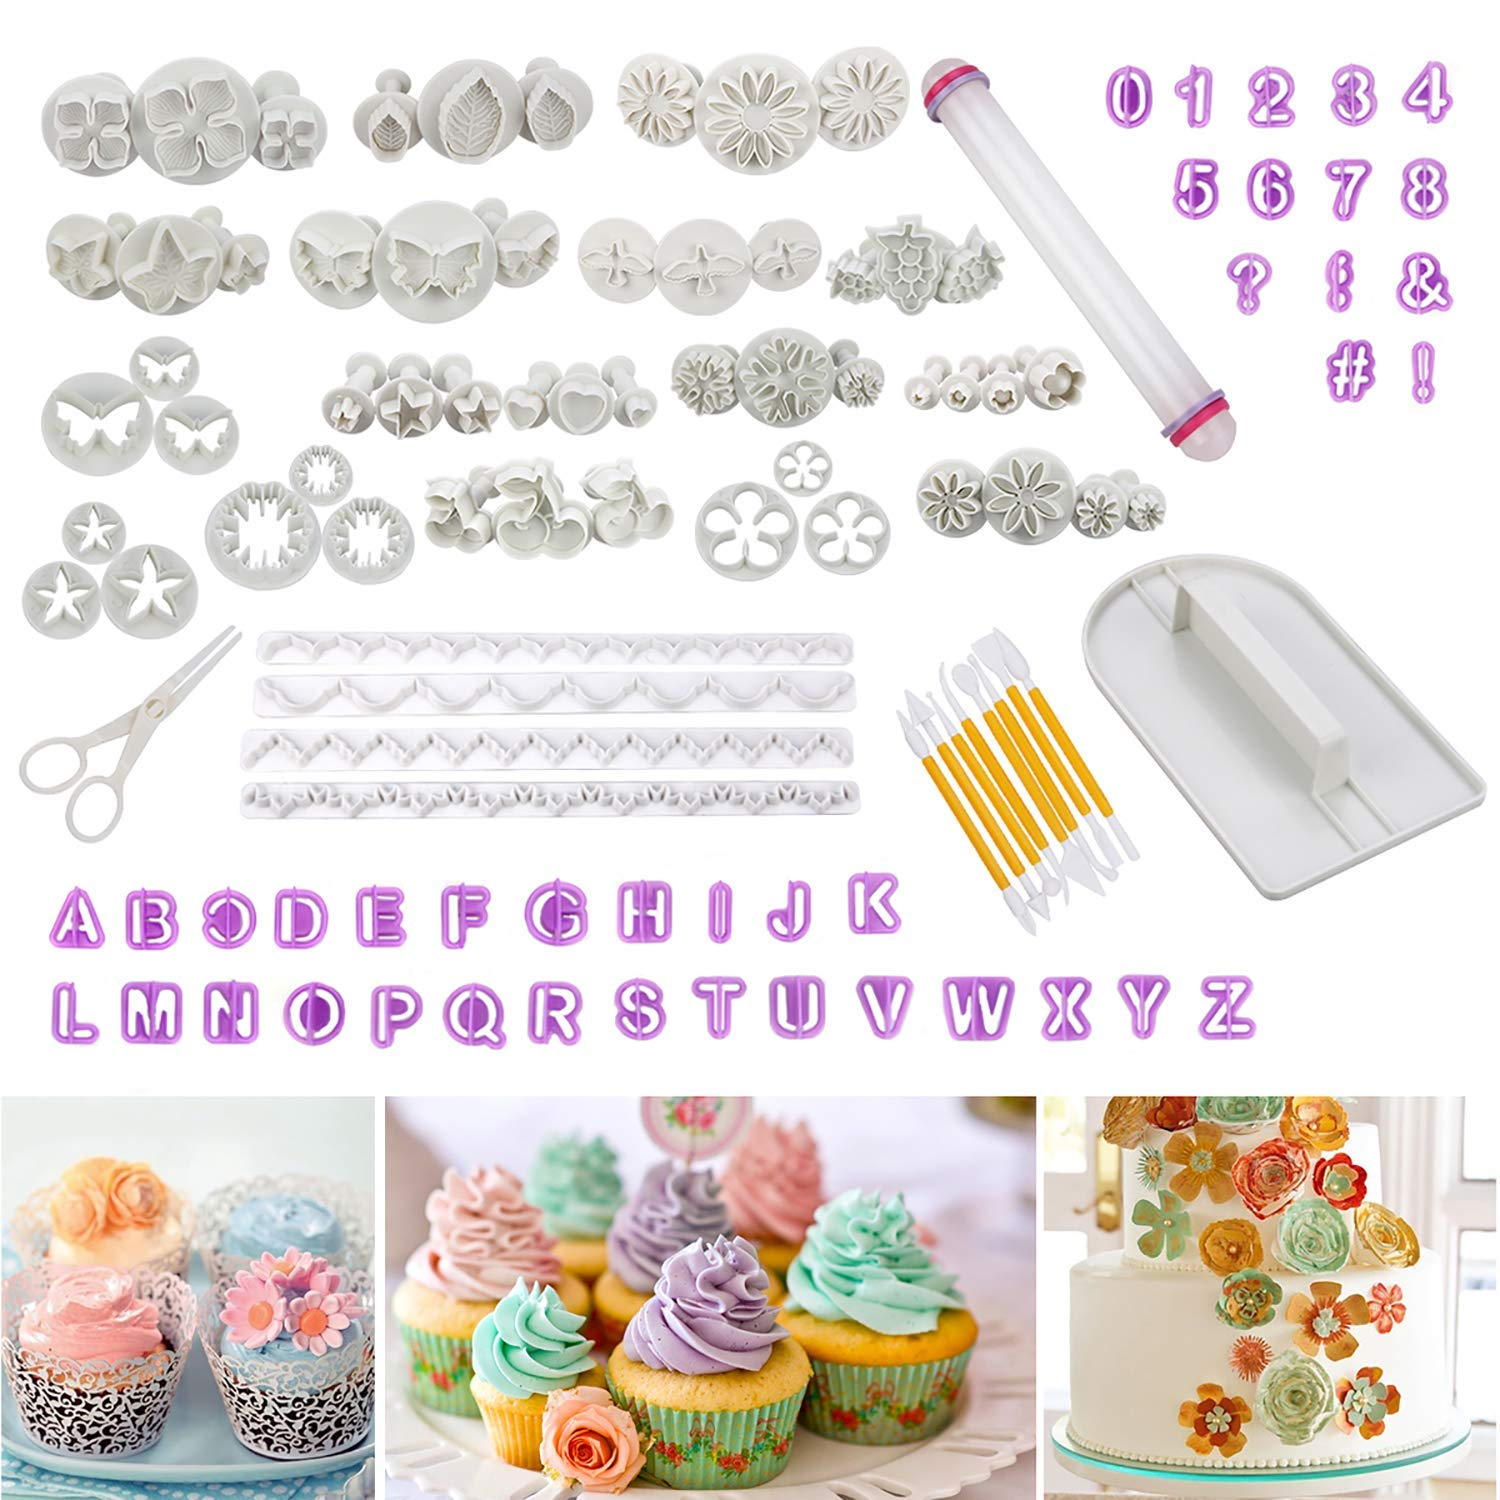 Fondant Tools Cadrim 109pcs Fondant Cutter Cake Decorating Kit Cake Baking Tools Sugarcraft Icing Decoration Kit Flower Modelling Fondant Tools